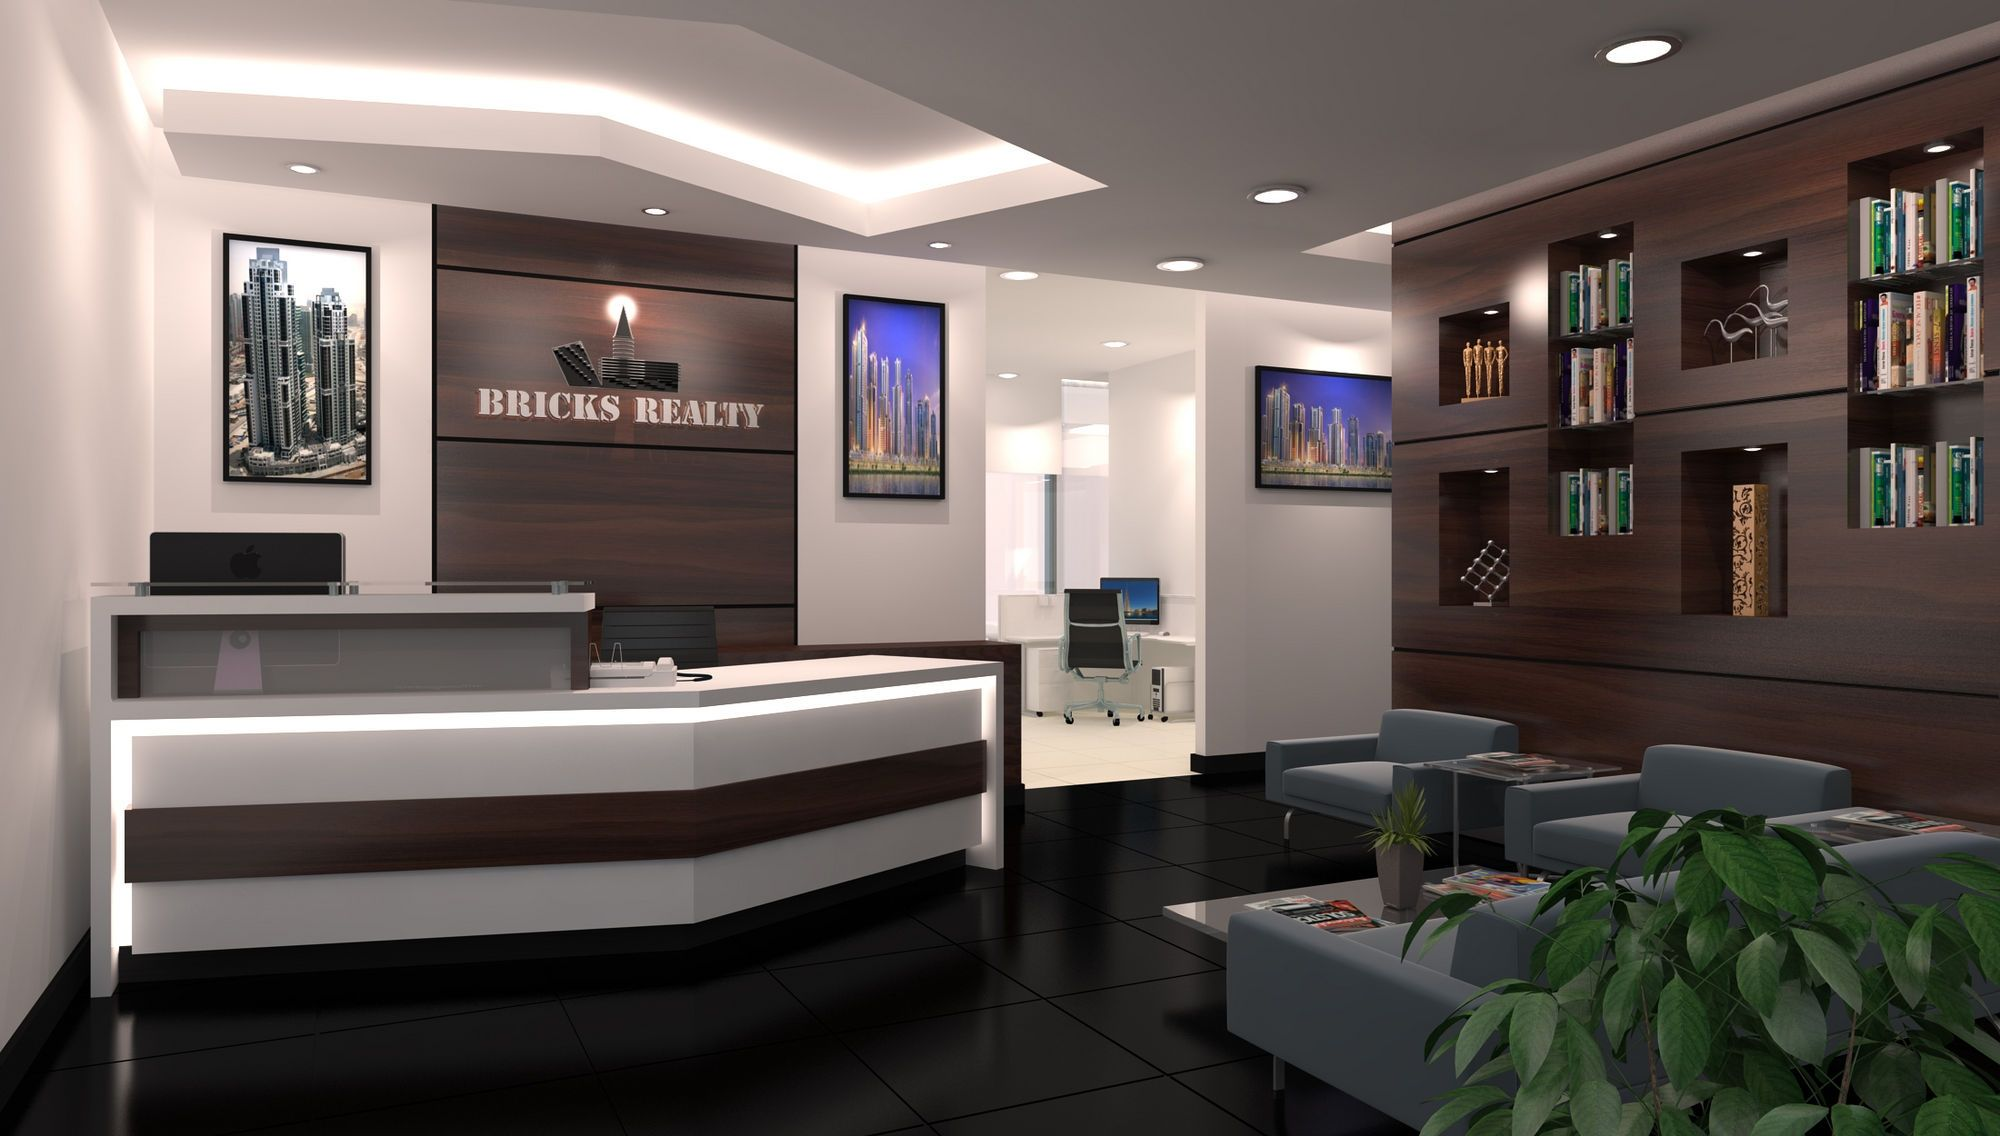 Image Result For Nautical Reception Desk Modern Office Reception